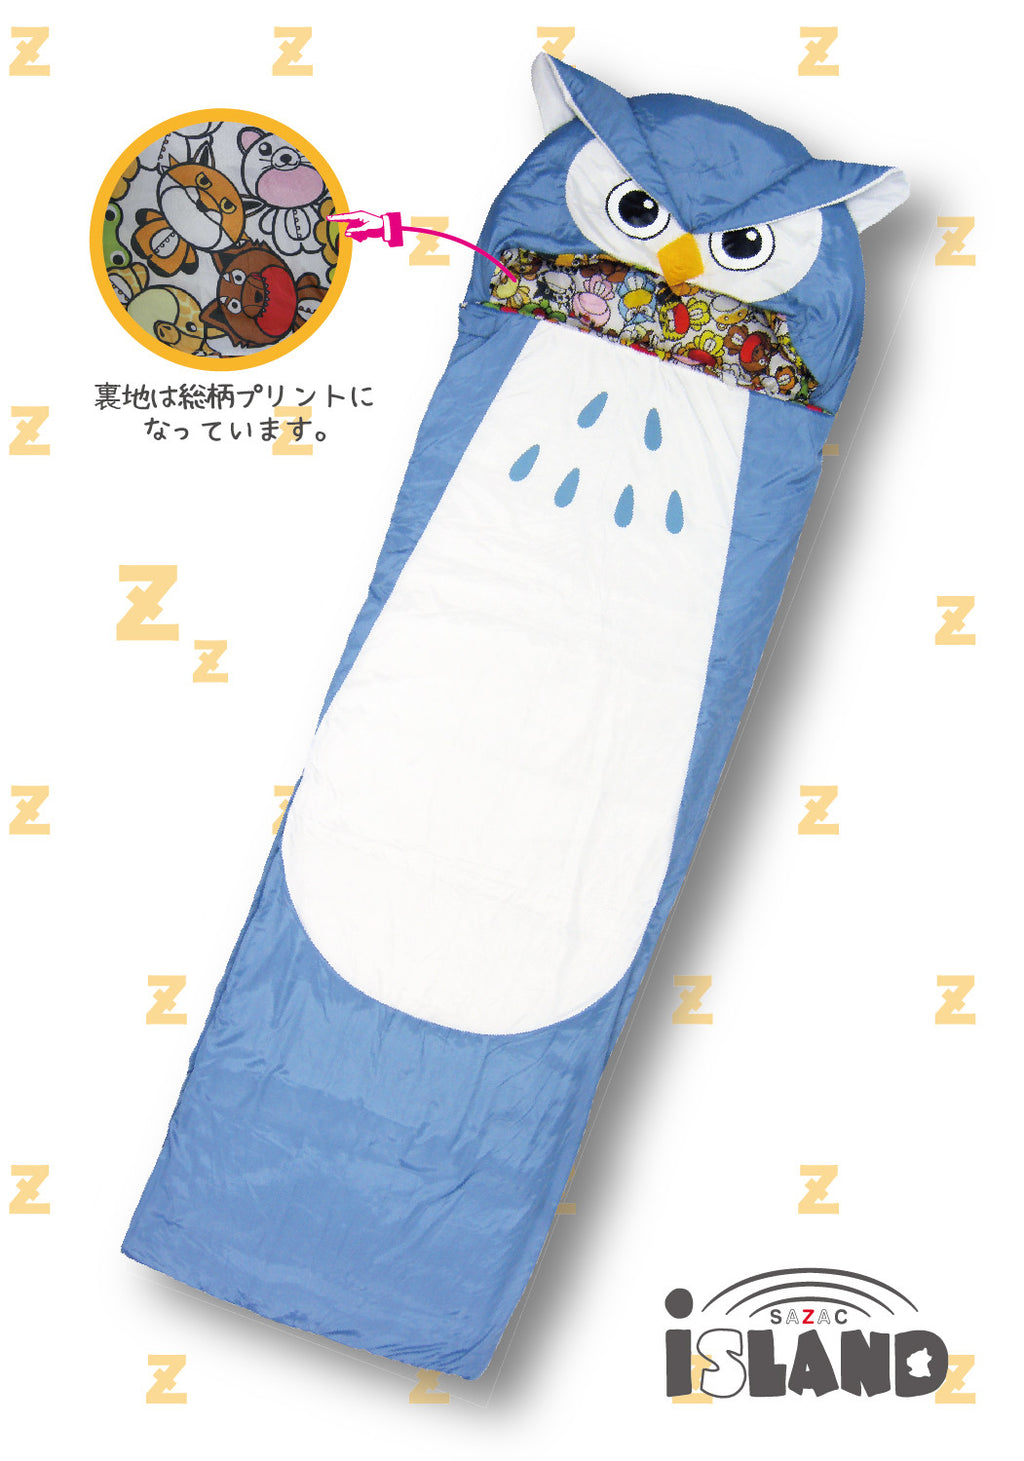 Owl Sleeping Bag OUTLET SALE